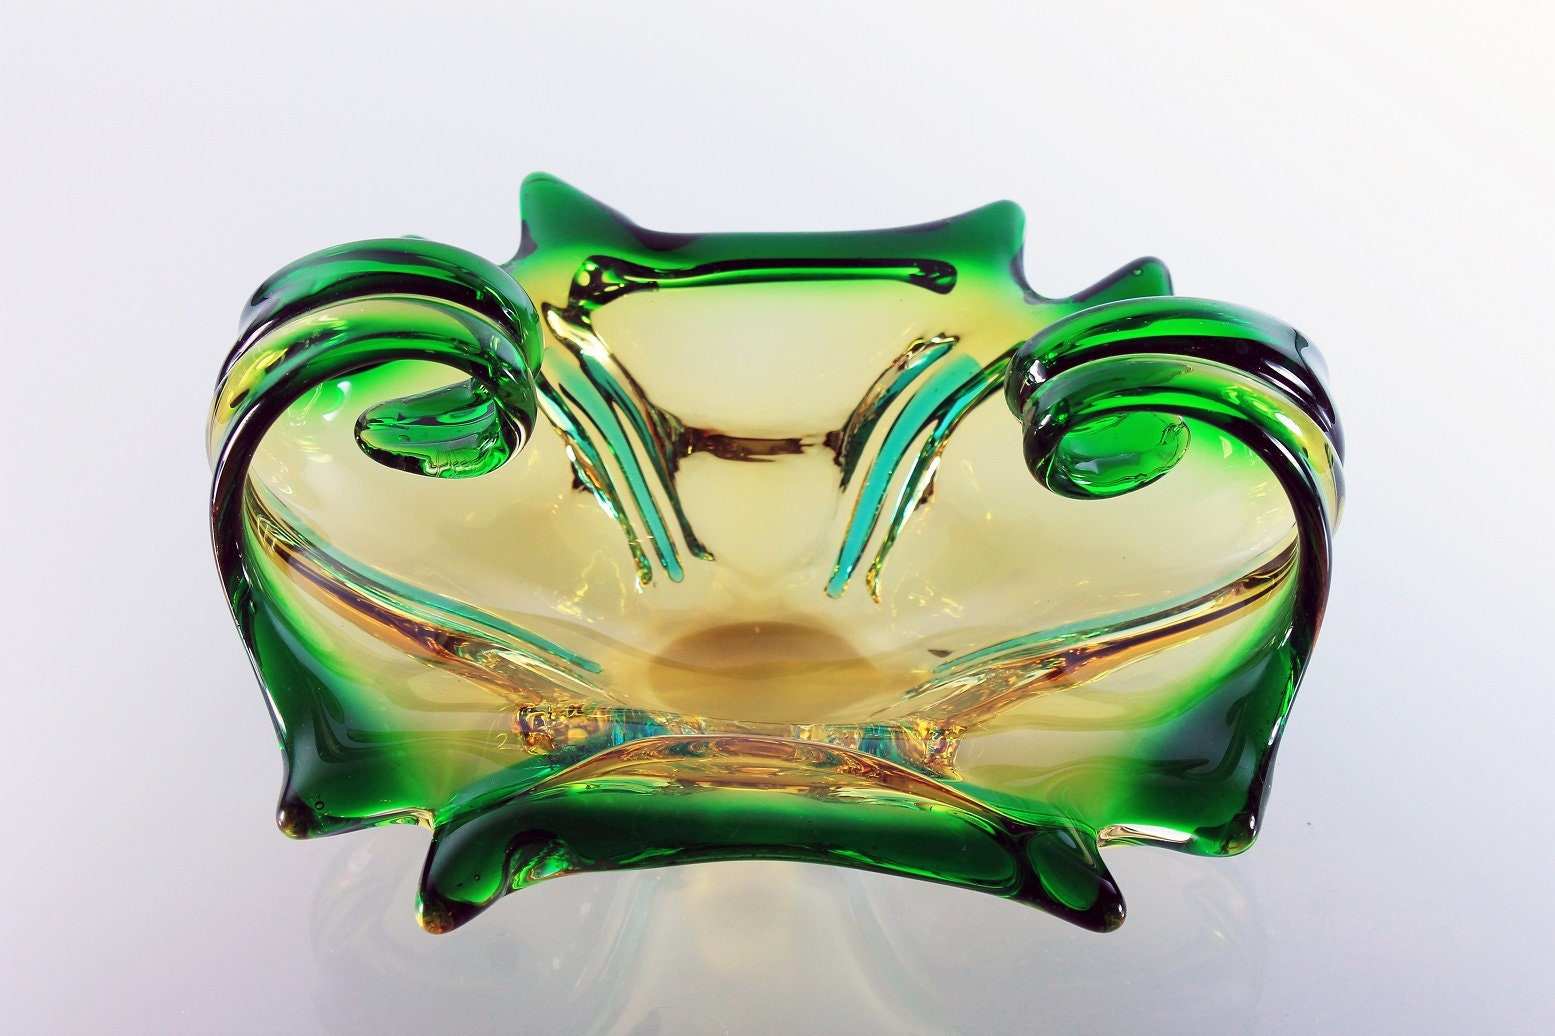 Art Glass Bowl, Display Bowl, Murano Style, Green and Gold